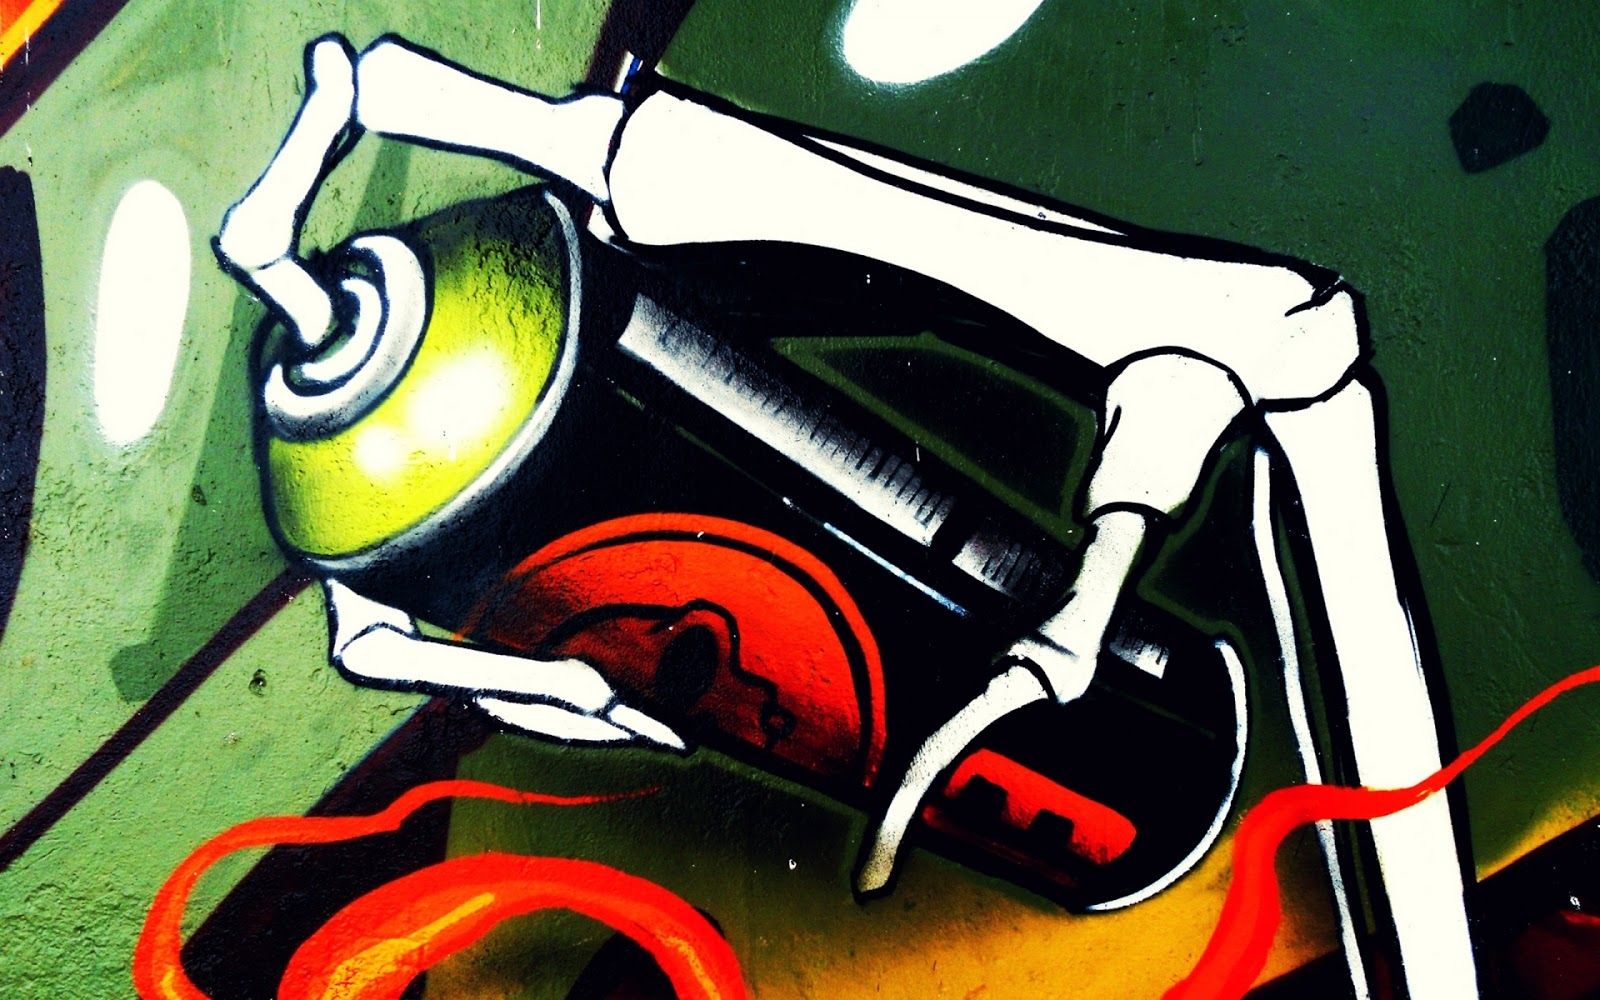 Graffiti Whatsapp Wallpaper